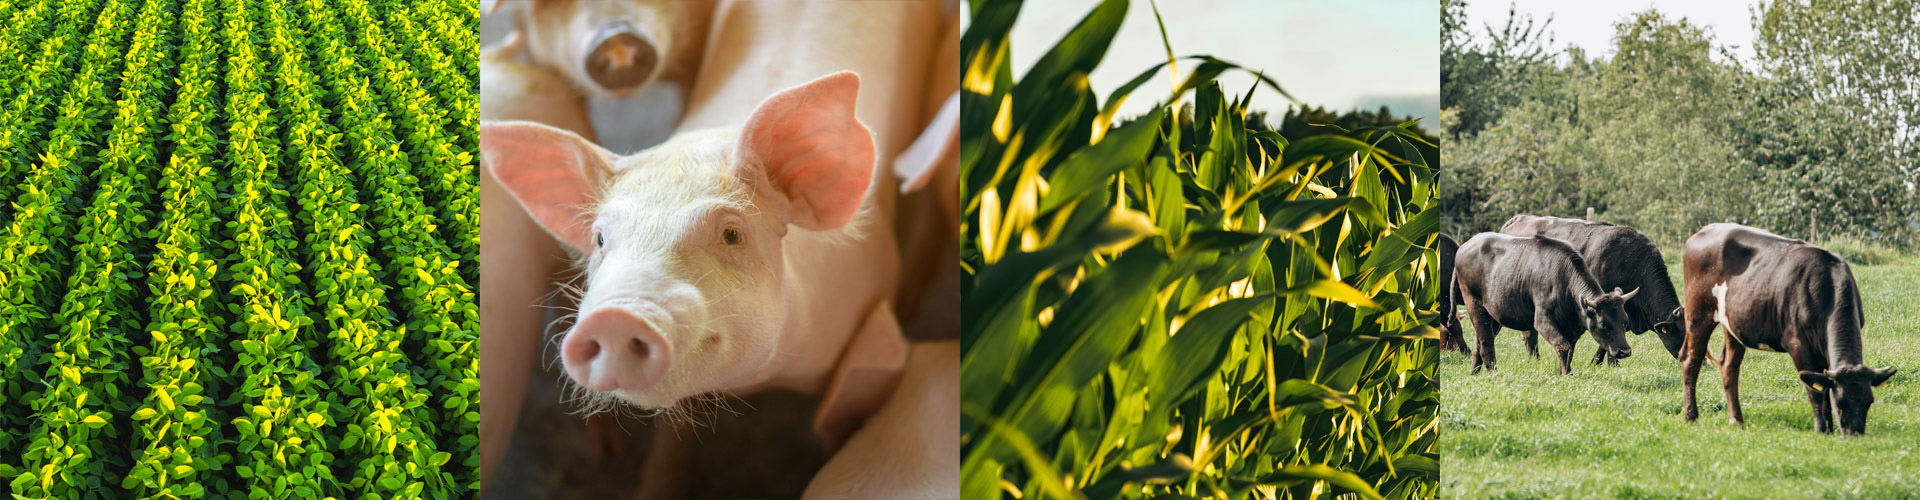 Collage featuring different sectors of production agrigculture